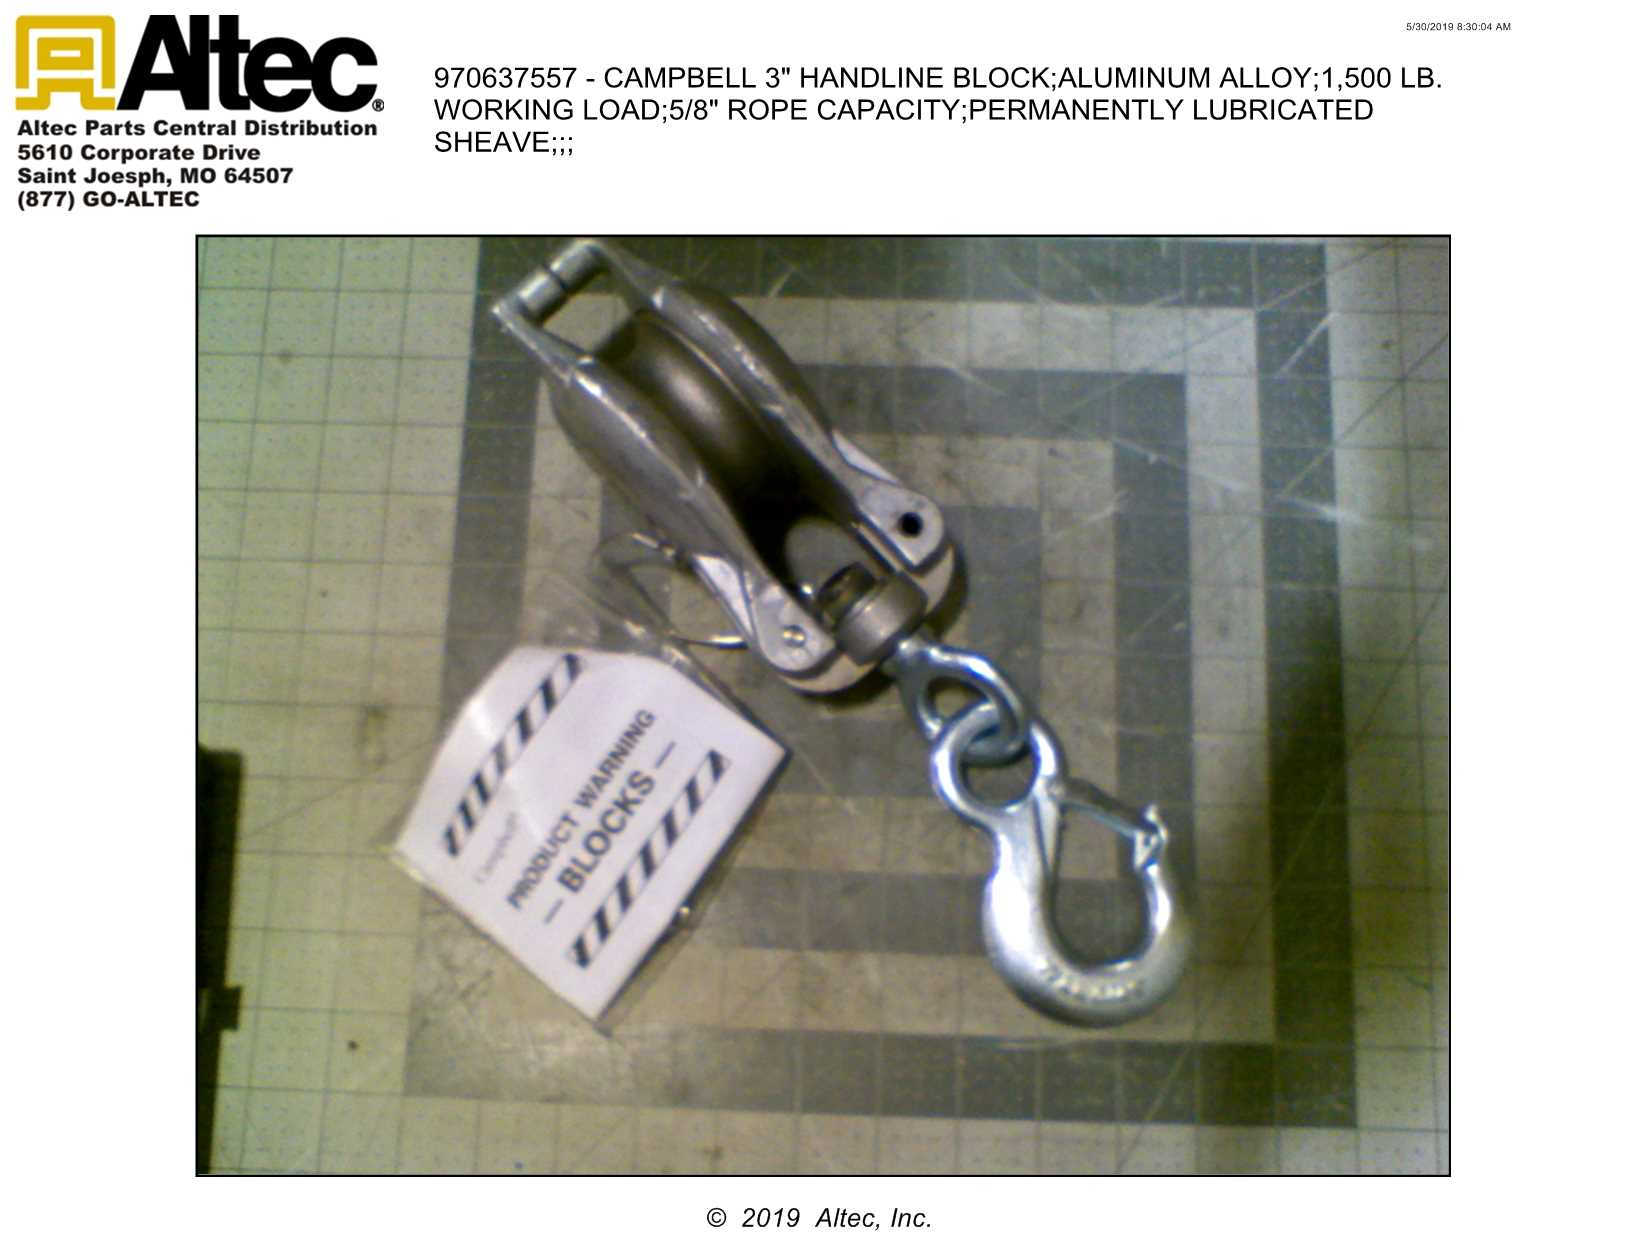 Campbell 3101G 2 Single Nylon Shell Block with Loose Swivel G Latch Hook 3//8-1//2 Rope 2 Sheave 500 lbs Load Capacity